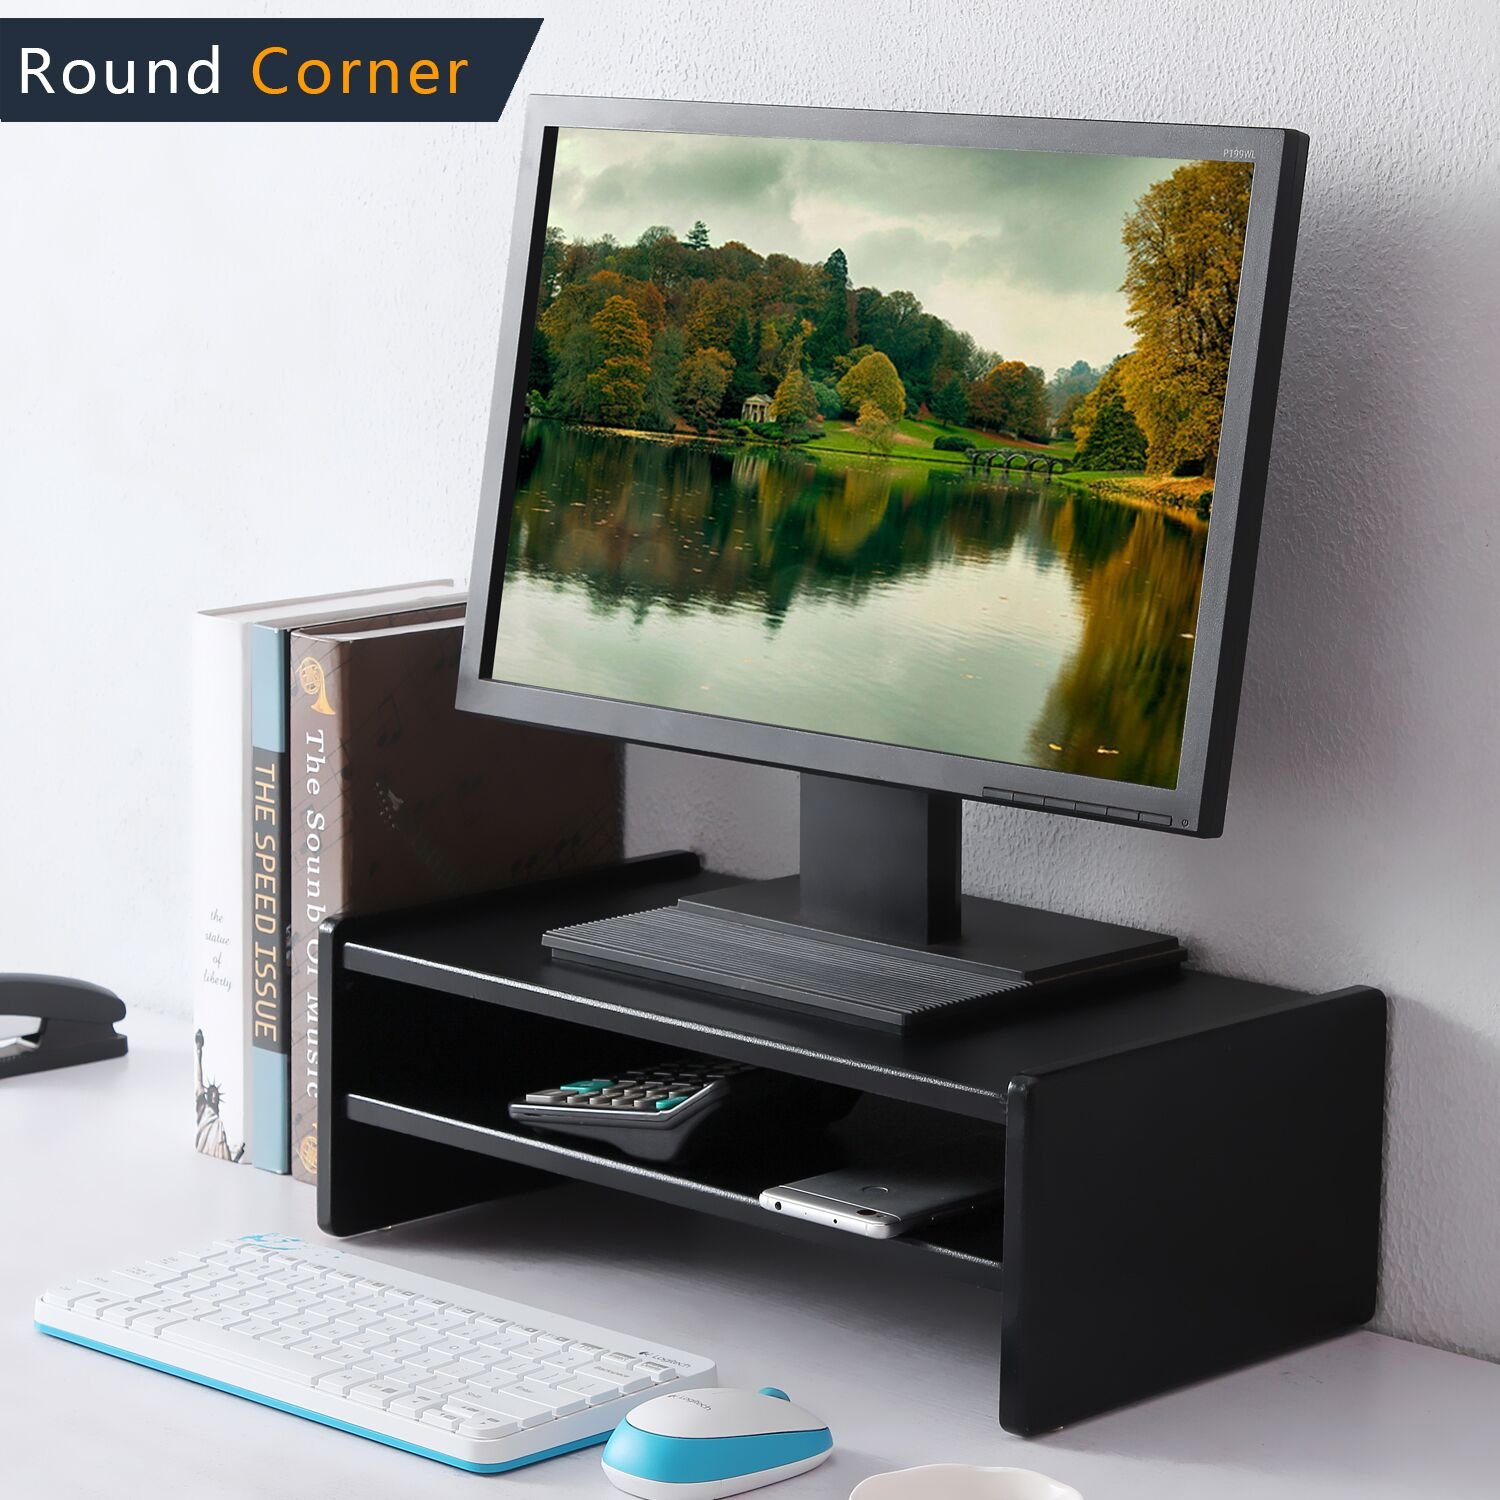 TAVR Computer Monitor Riser Two Tiers Shelves Monitor Stand 16.7 x 9.4 inch Save Space Desktop Stand CM1002